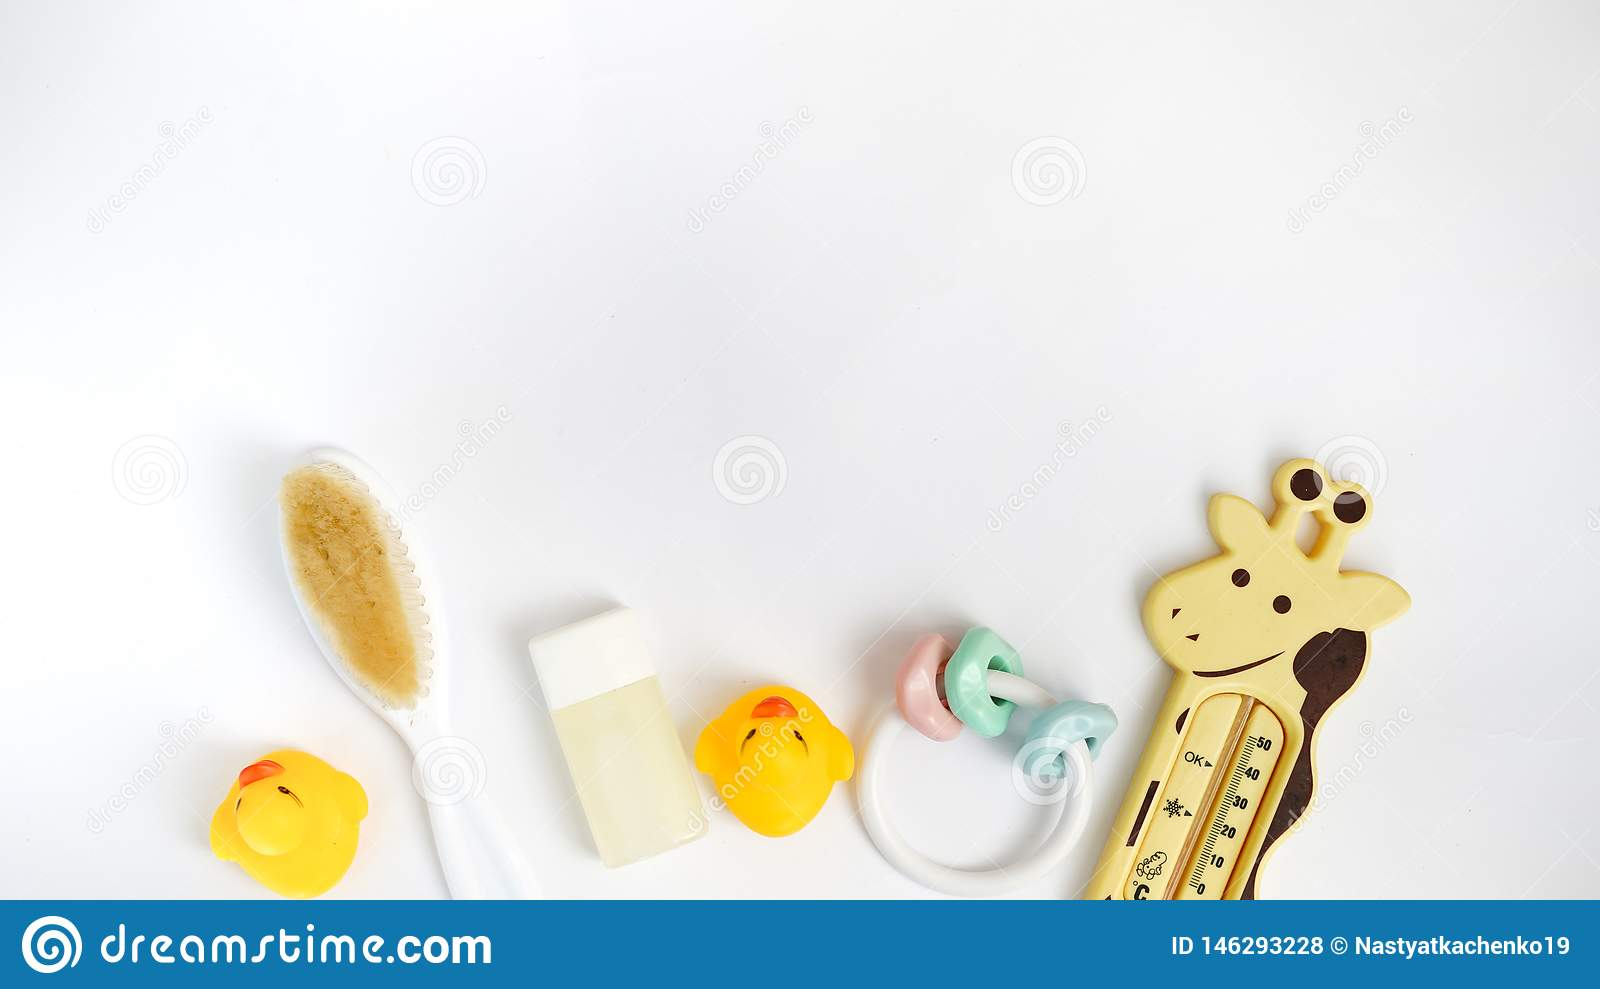 Baby bath products isolated on white background with copy space. flat lay soap bar, yellow rubber duck and liquid soap, toy